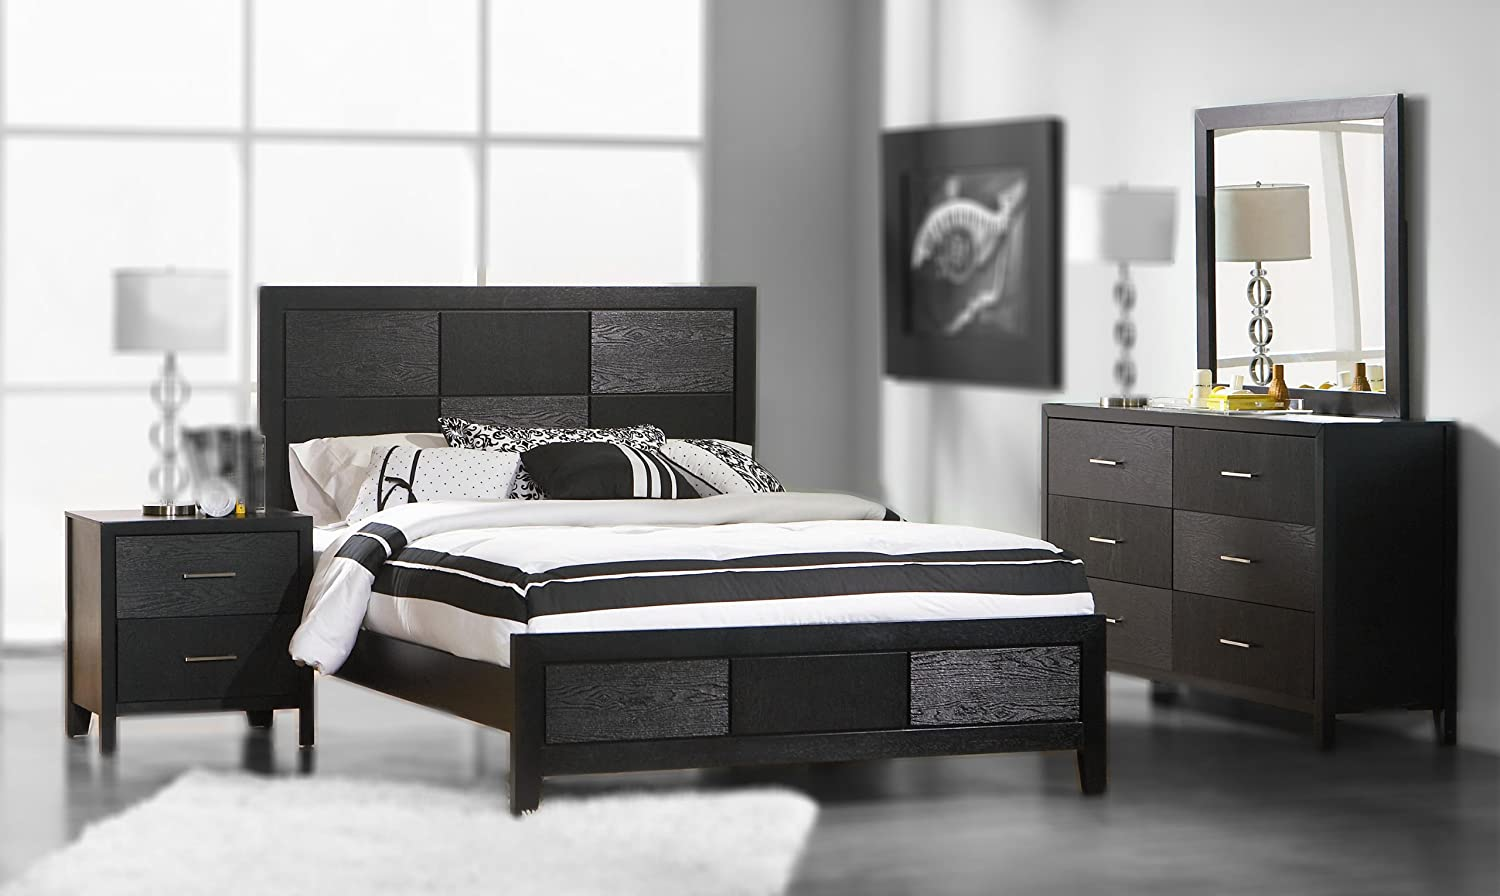 4pc California King Size Bedroom Set with Wood Grain in Black Finish